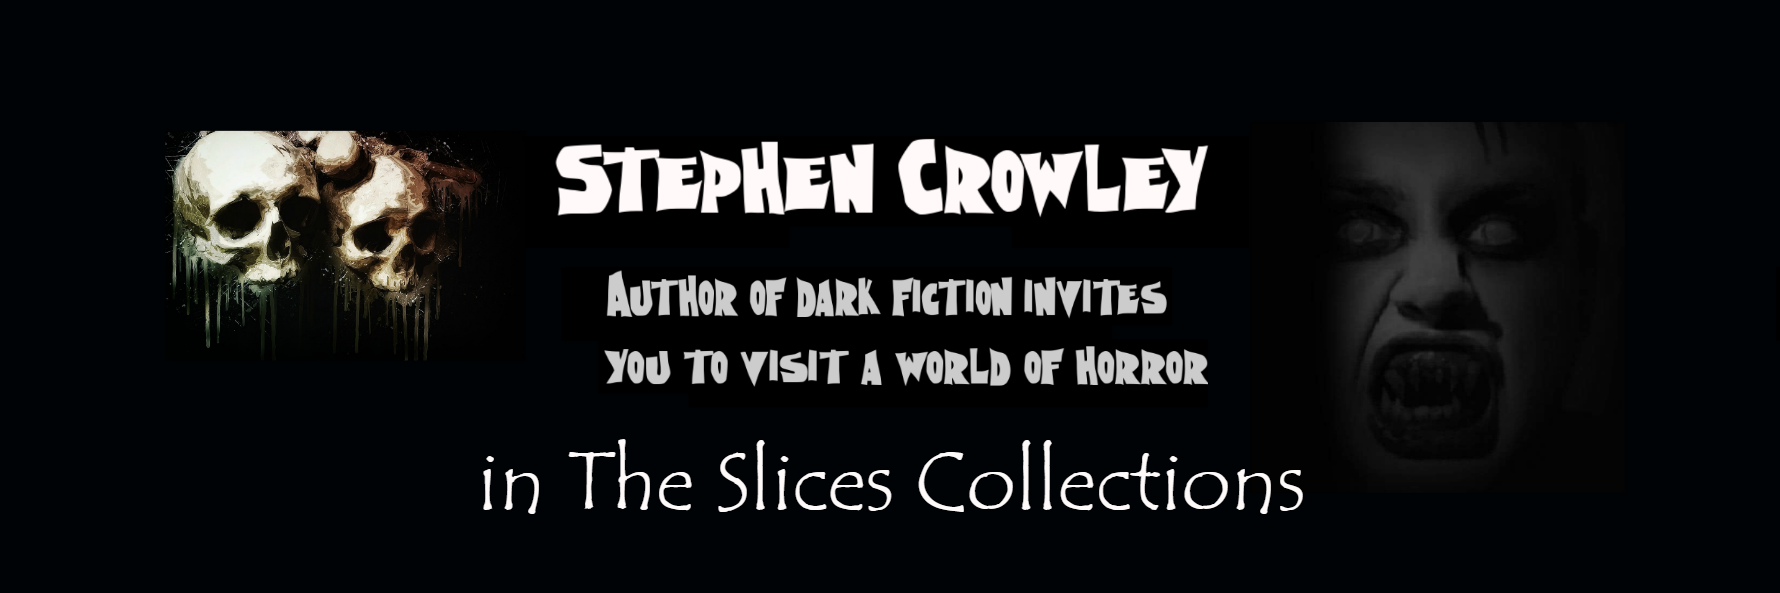 stephen crowley the slices collections